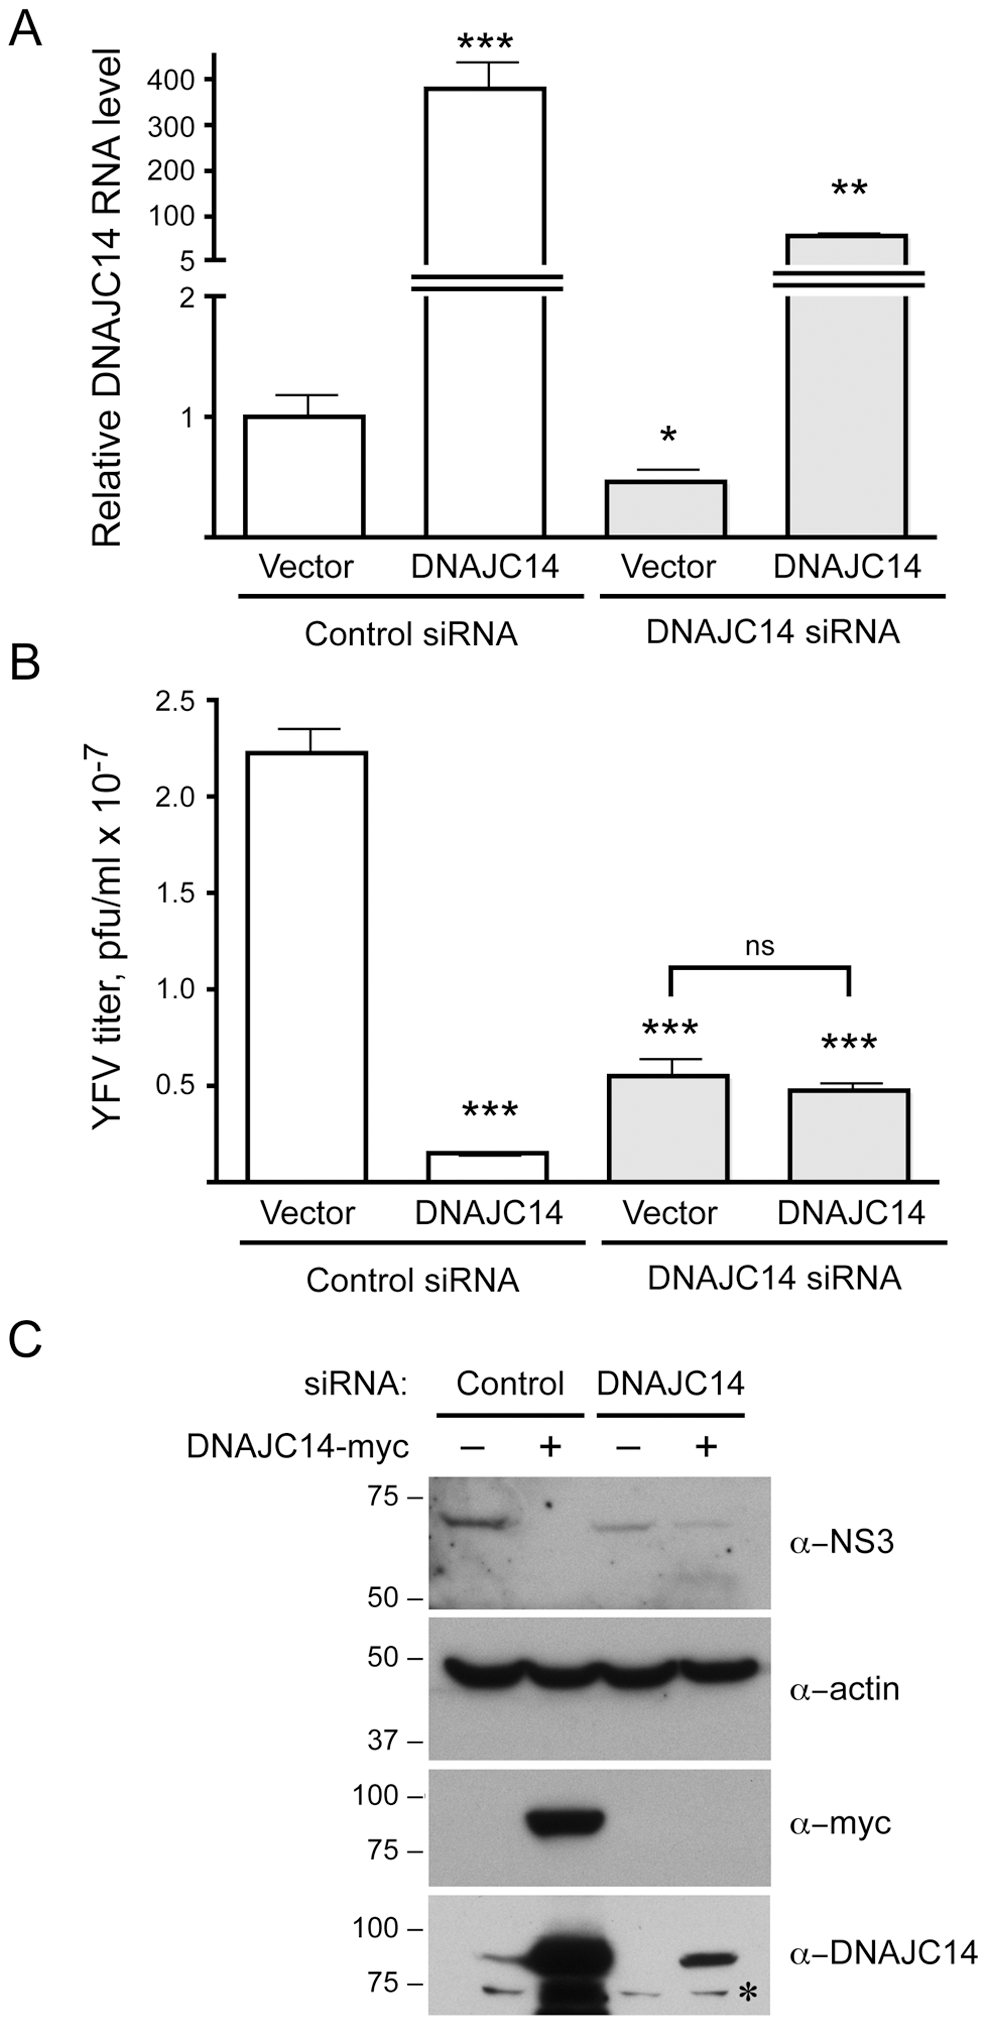 Modulation of DNAJC14 levels by siRNA alters YFV replication.